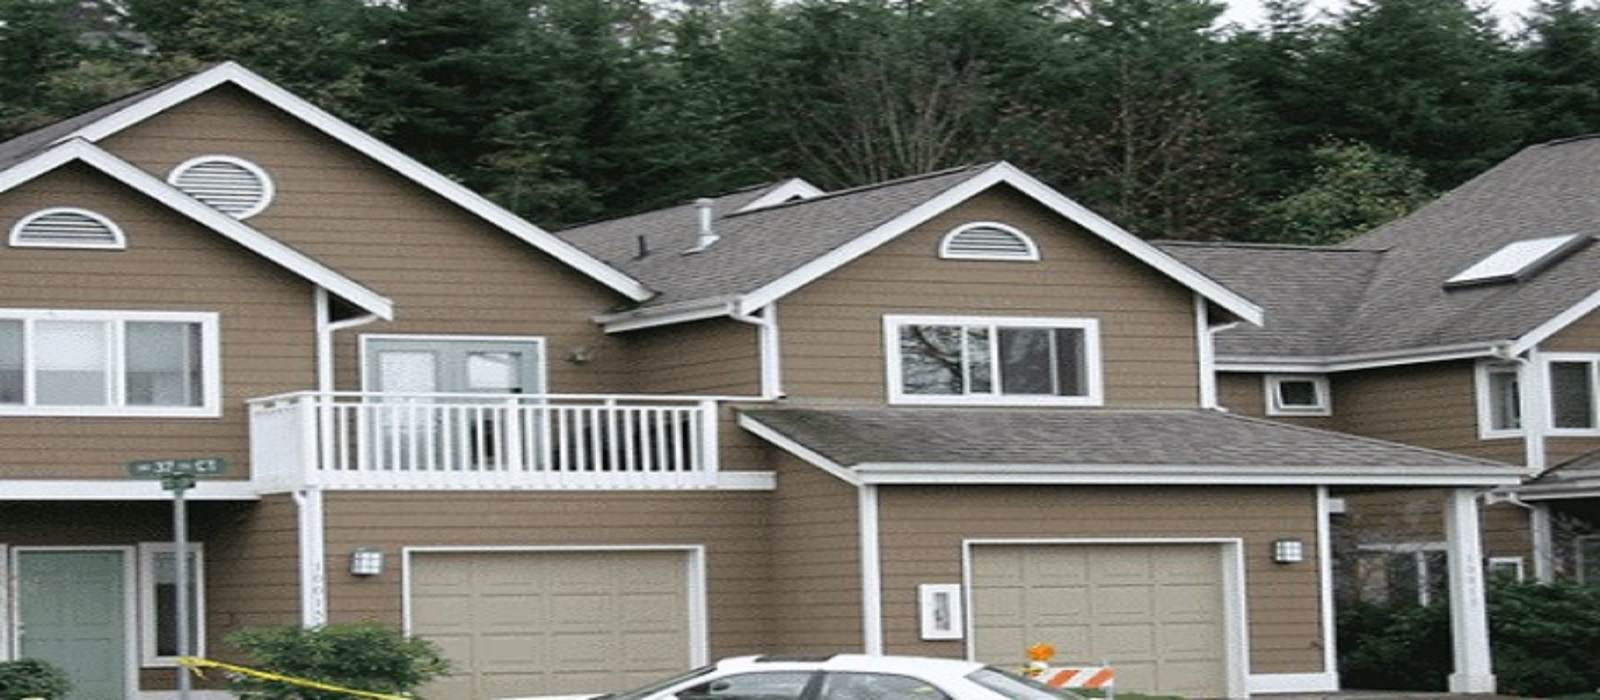 Residential Painting Contractors Near Overland Park Ks